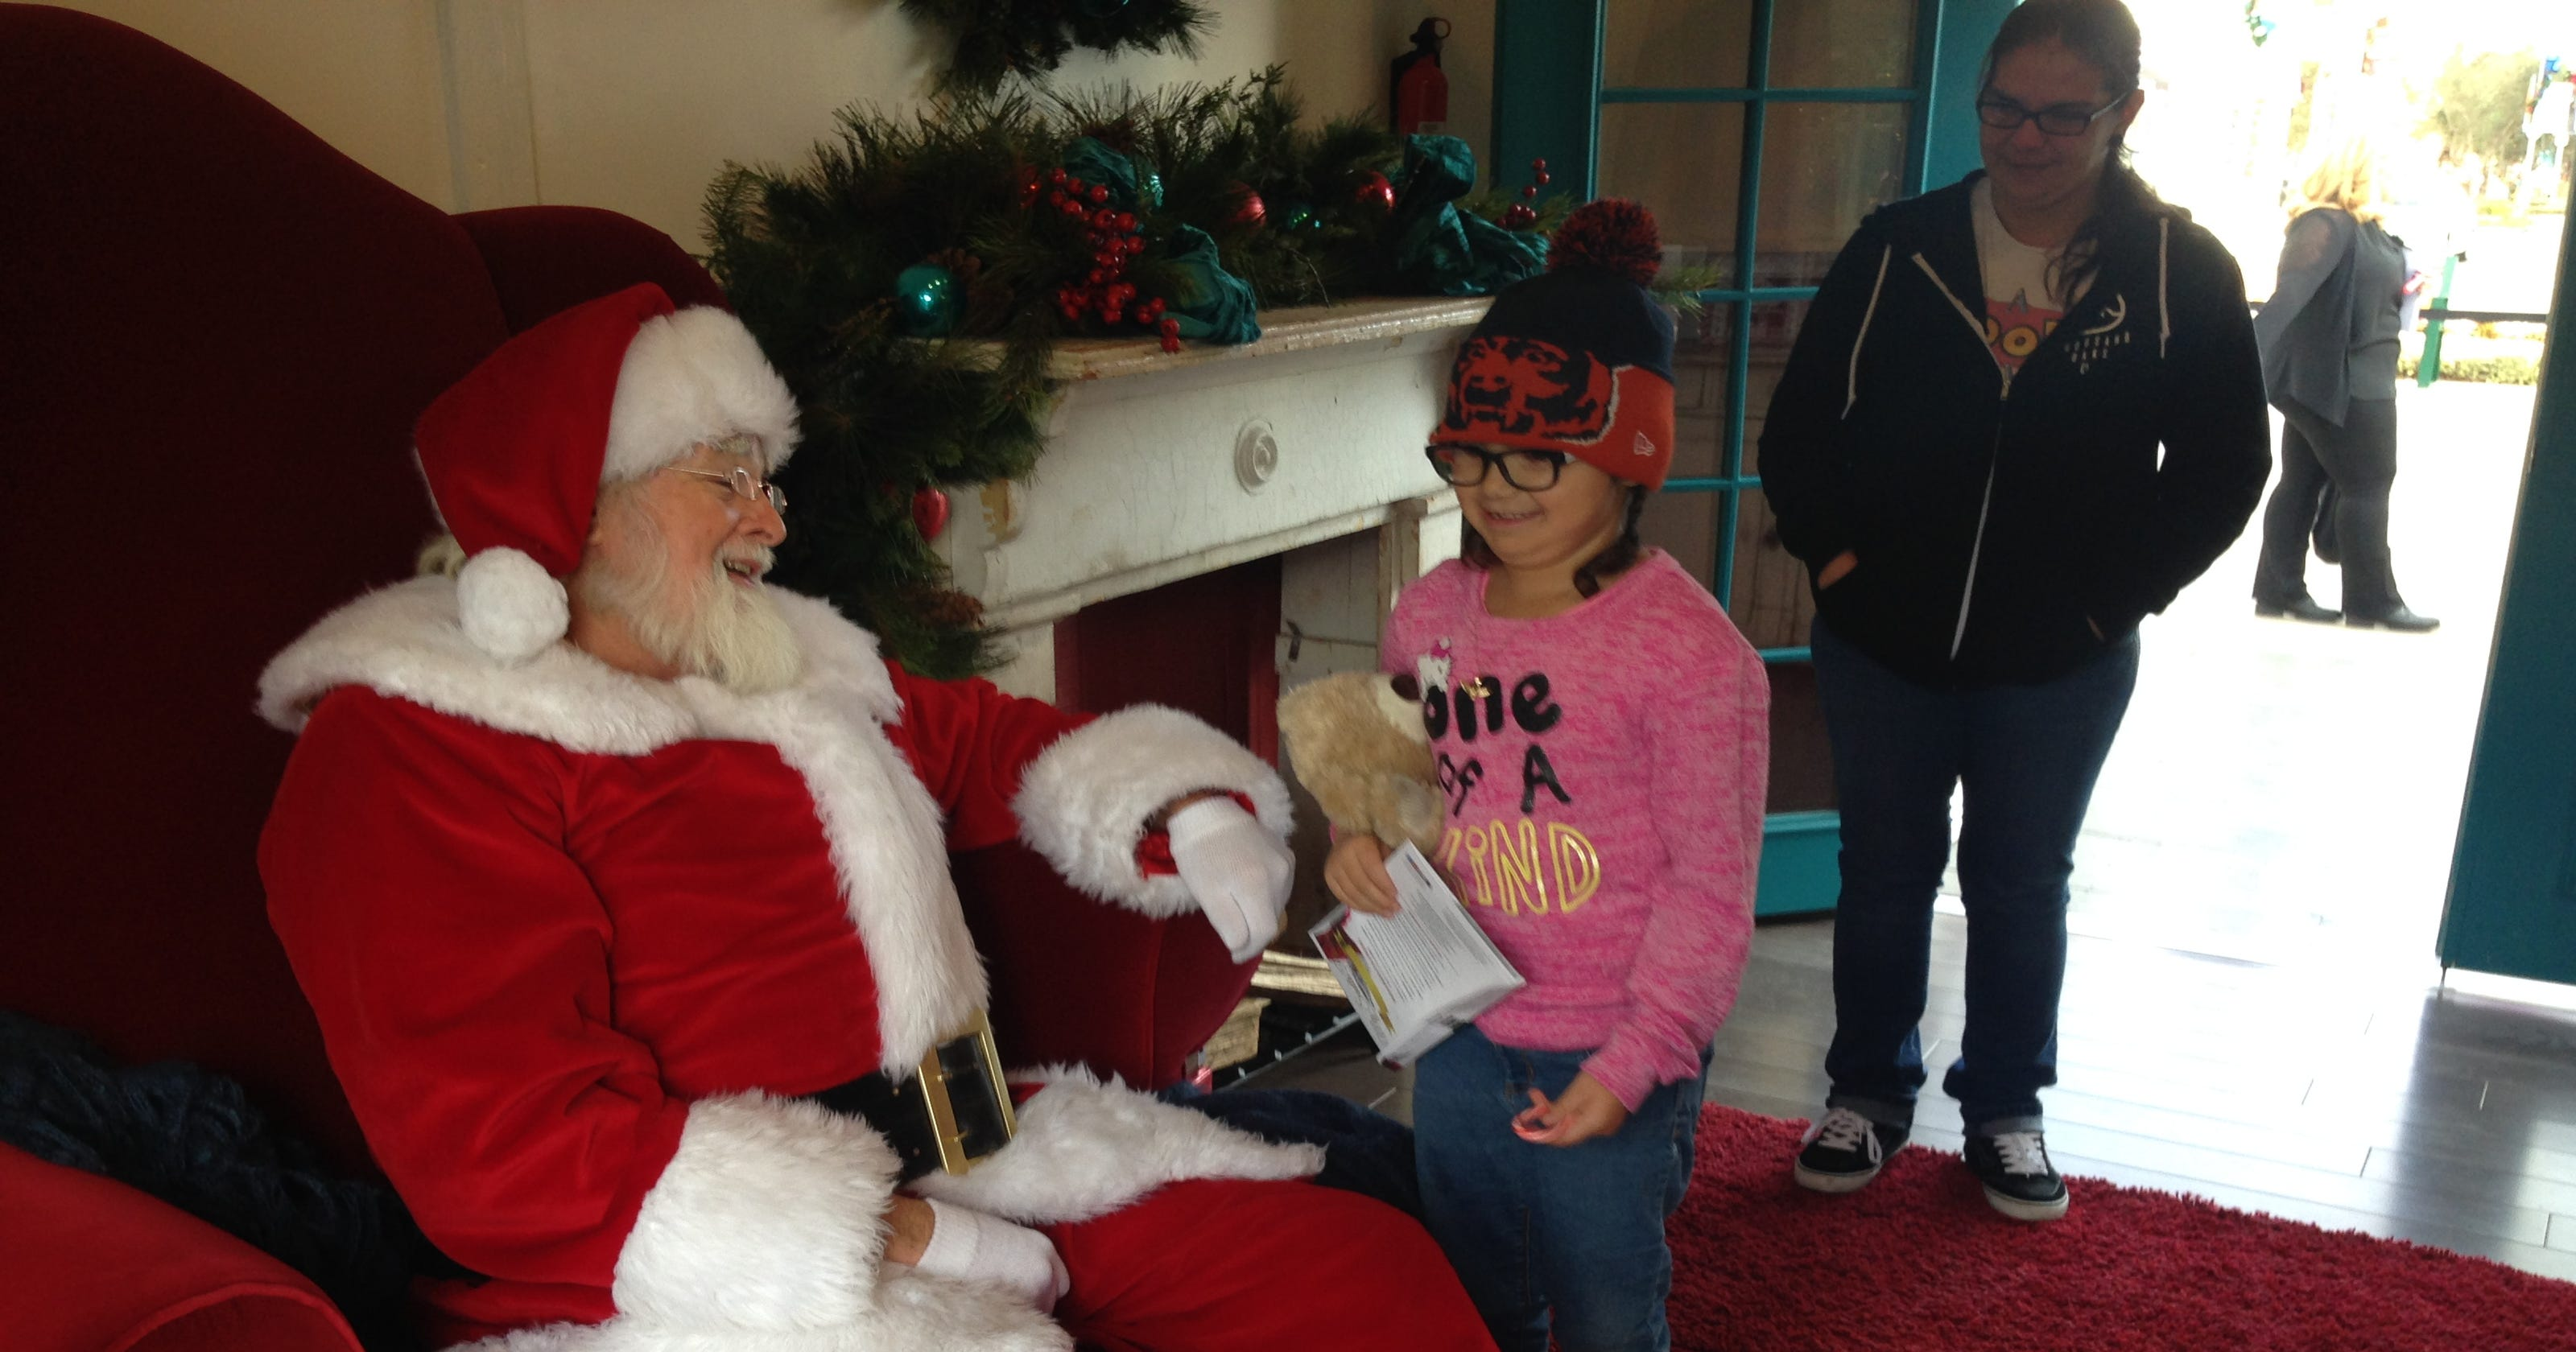 6 year old oxnard girl visits with santa for the first time - Annabelle Christmas